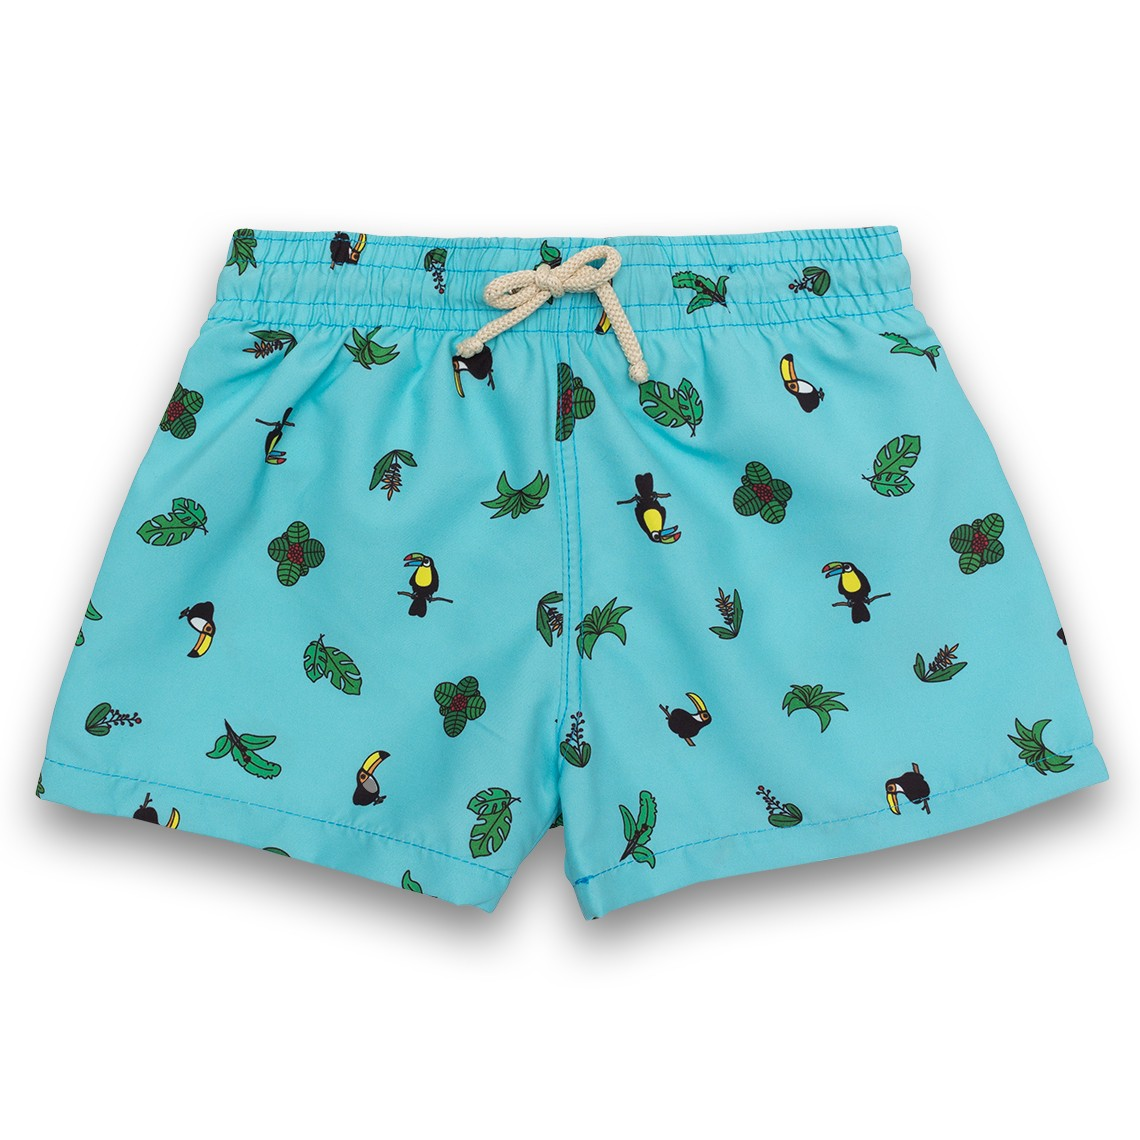 6b3f9c8314 Boy Swim short Blue Toucans 2 to 6 years - Ocoly